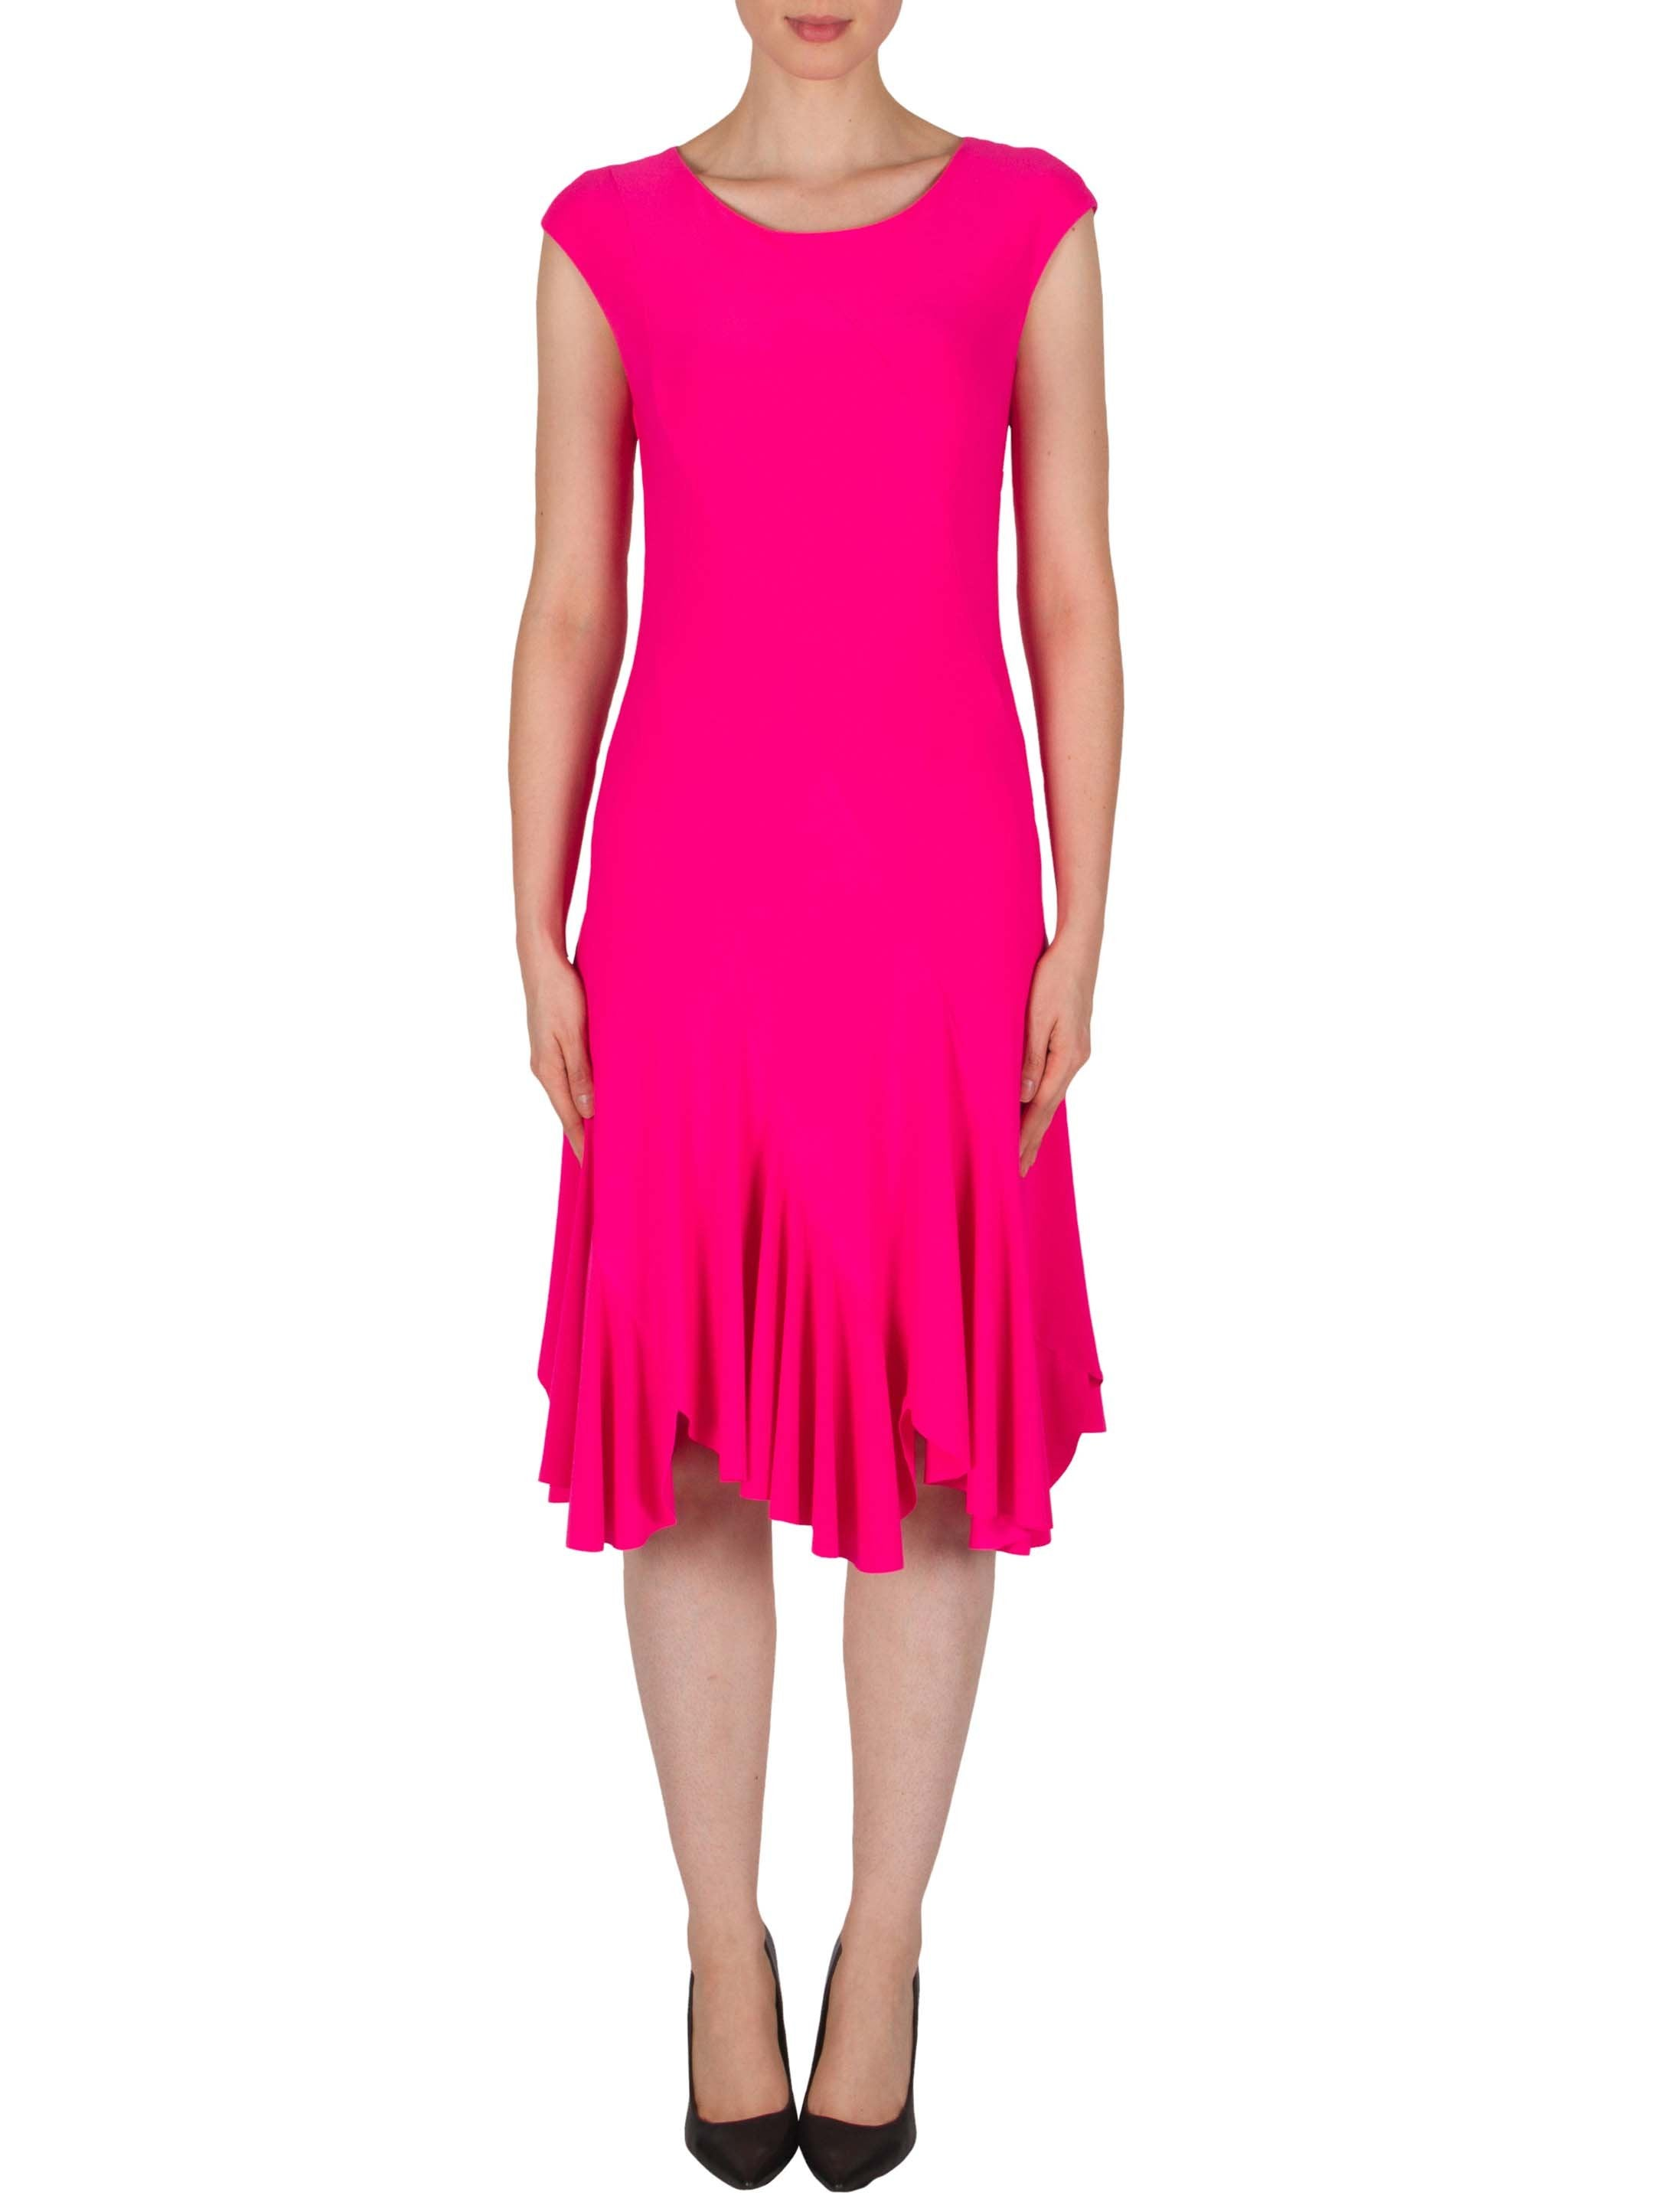 Joseph Ribkoff Pink Panelled Jersey Dress with Fluted Hem